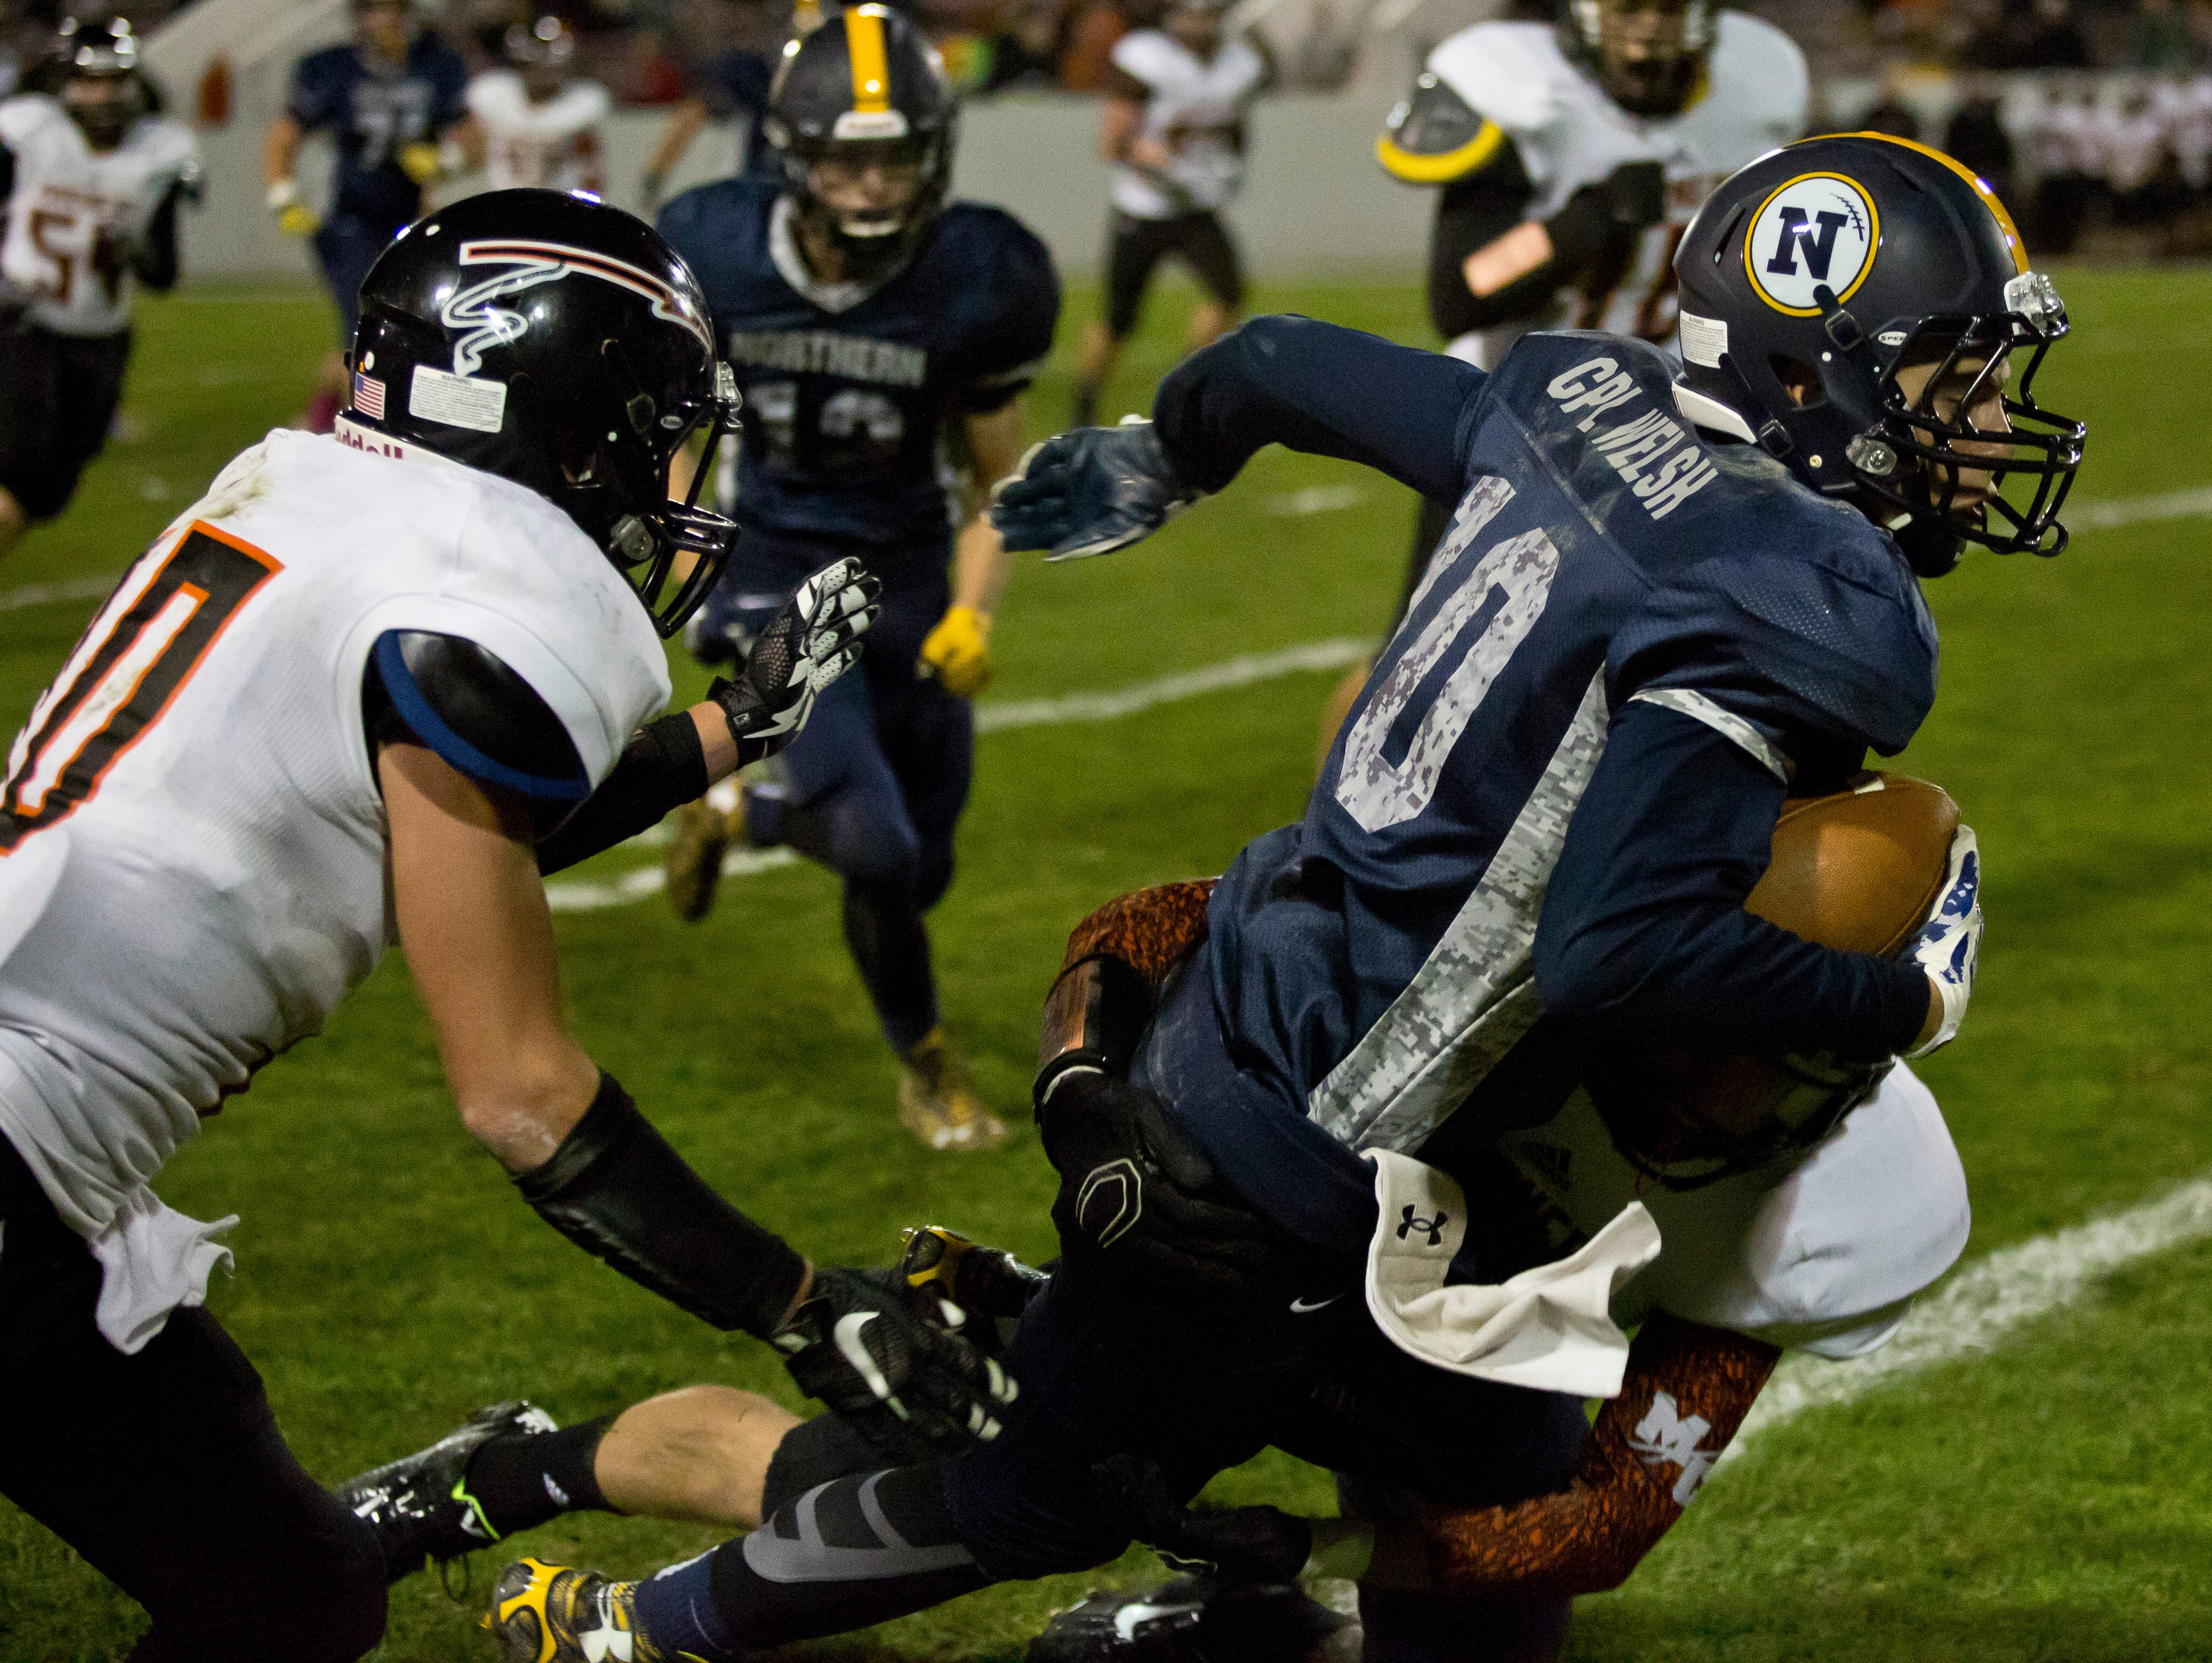 Port Huron Northern senior Geyrd Welsh runs the ball and is brought down by a host of Marine City defenders during a football game Friday, October 9, 2015 at Memorial Stadium in Port Huron.